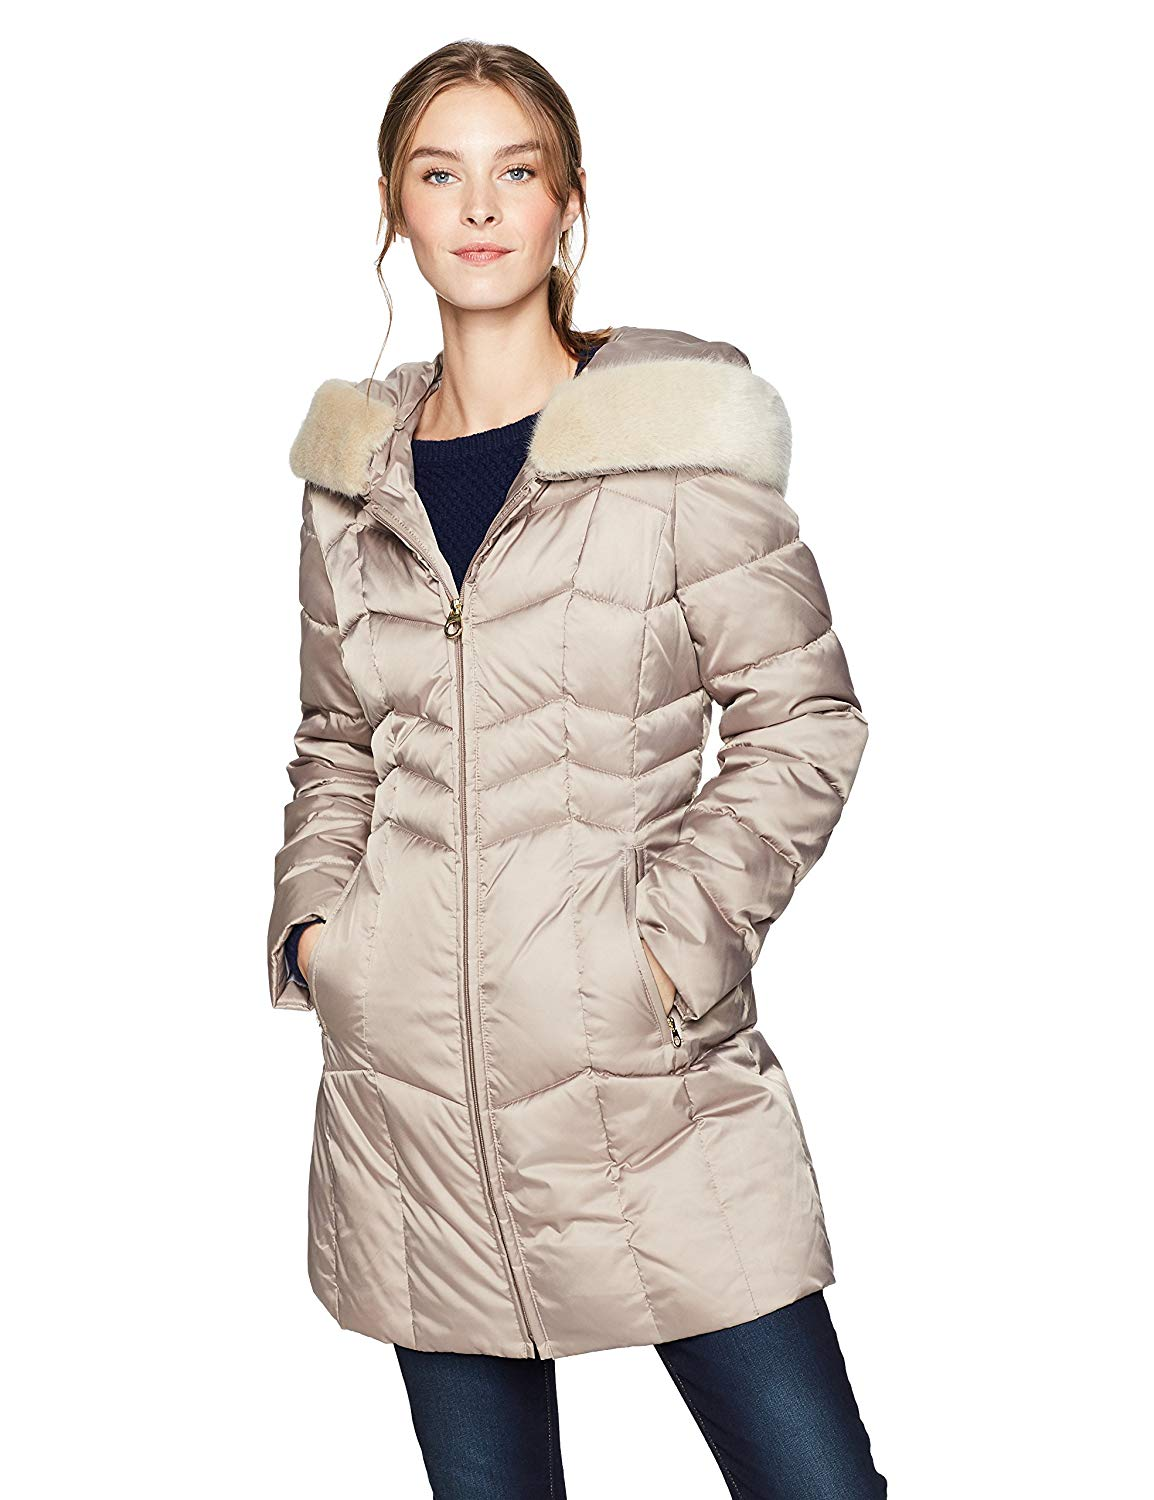 533a55206f4 Get Quotations · Haven Outerwear Women s Chevron Puffer Coat with Faux Fur  Trim